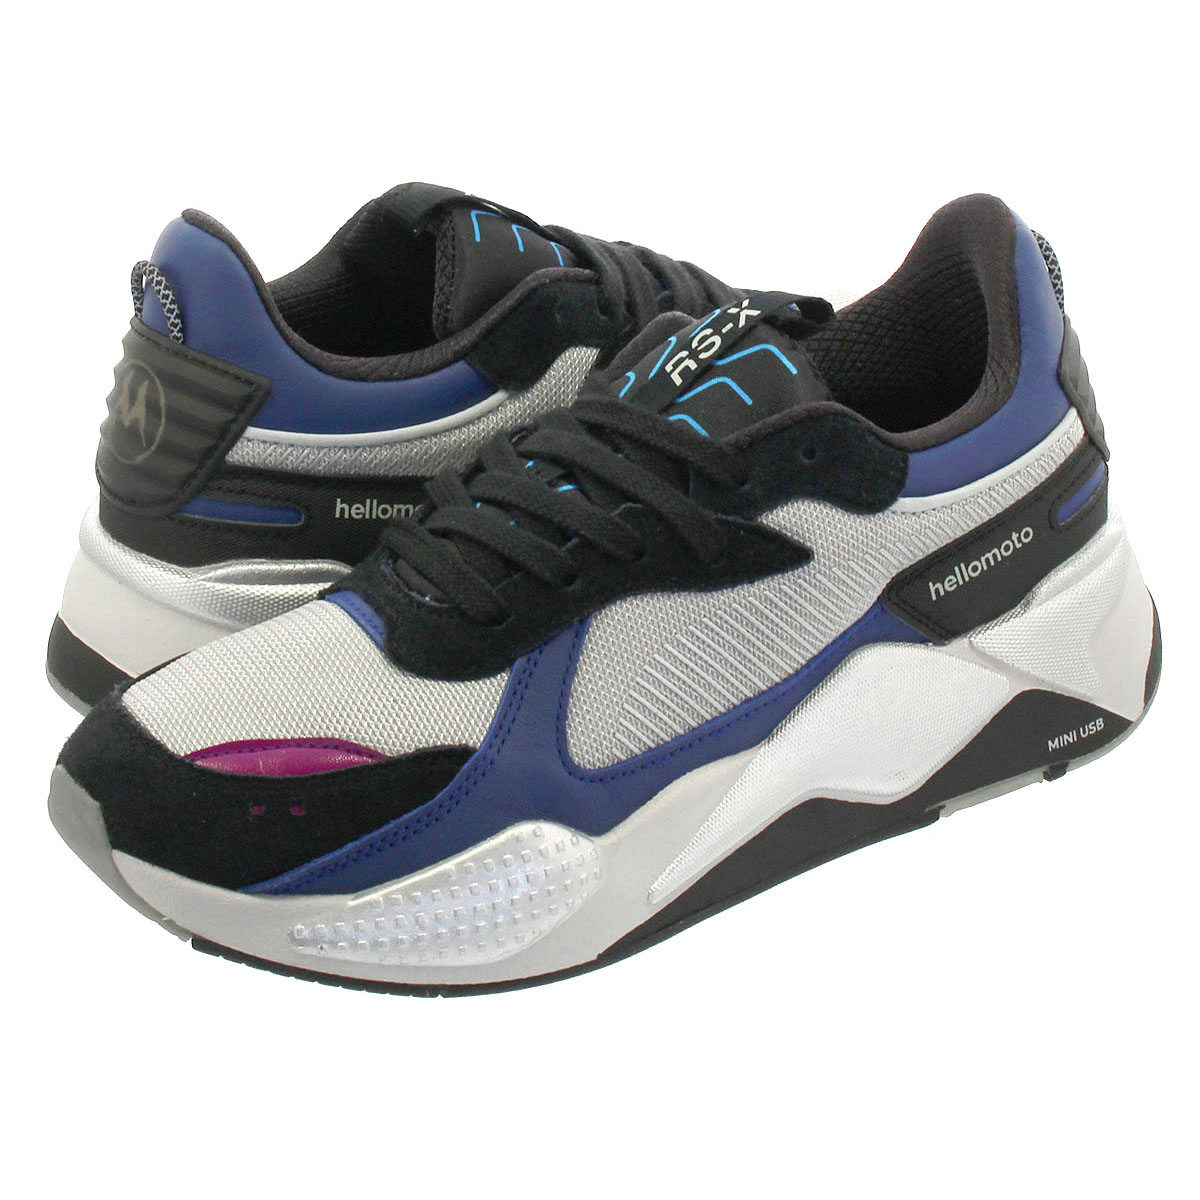 PUMA RS X TECH MOTOROLA Puma RS X technical center Motorola SILVERSODALITE BLUE 370,272 01